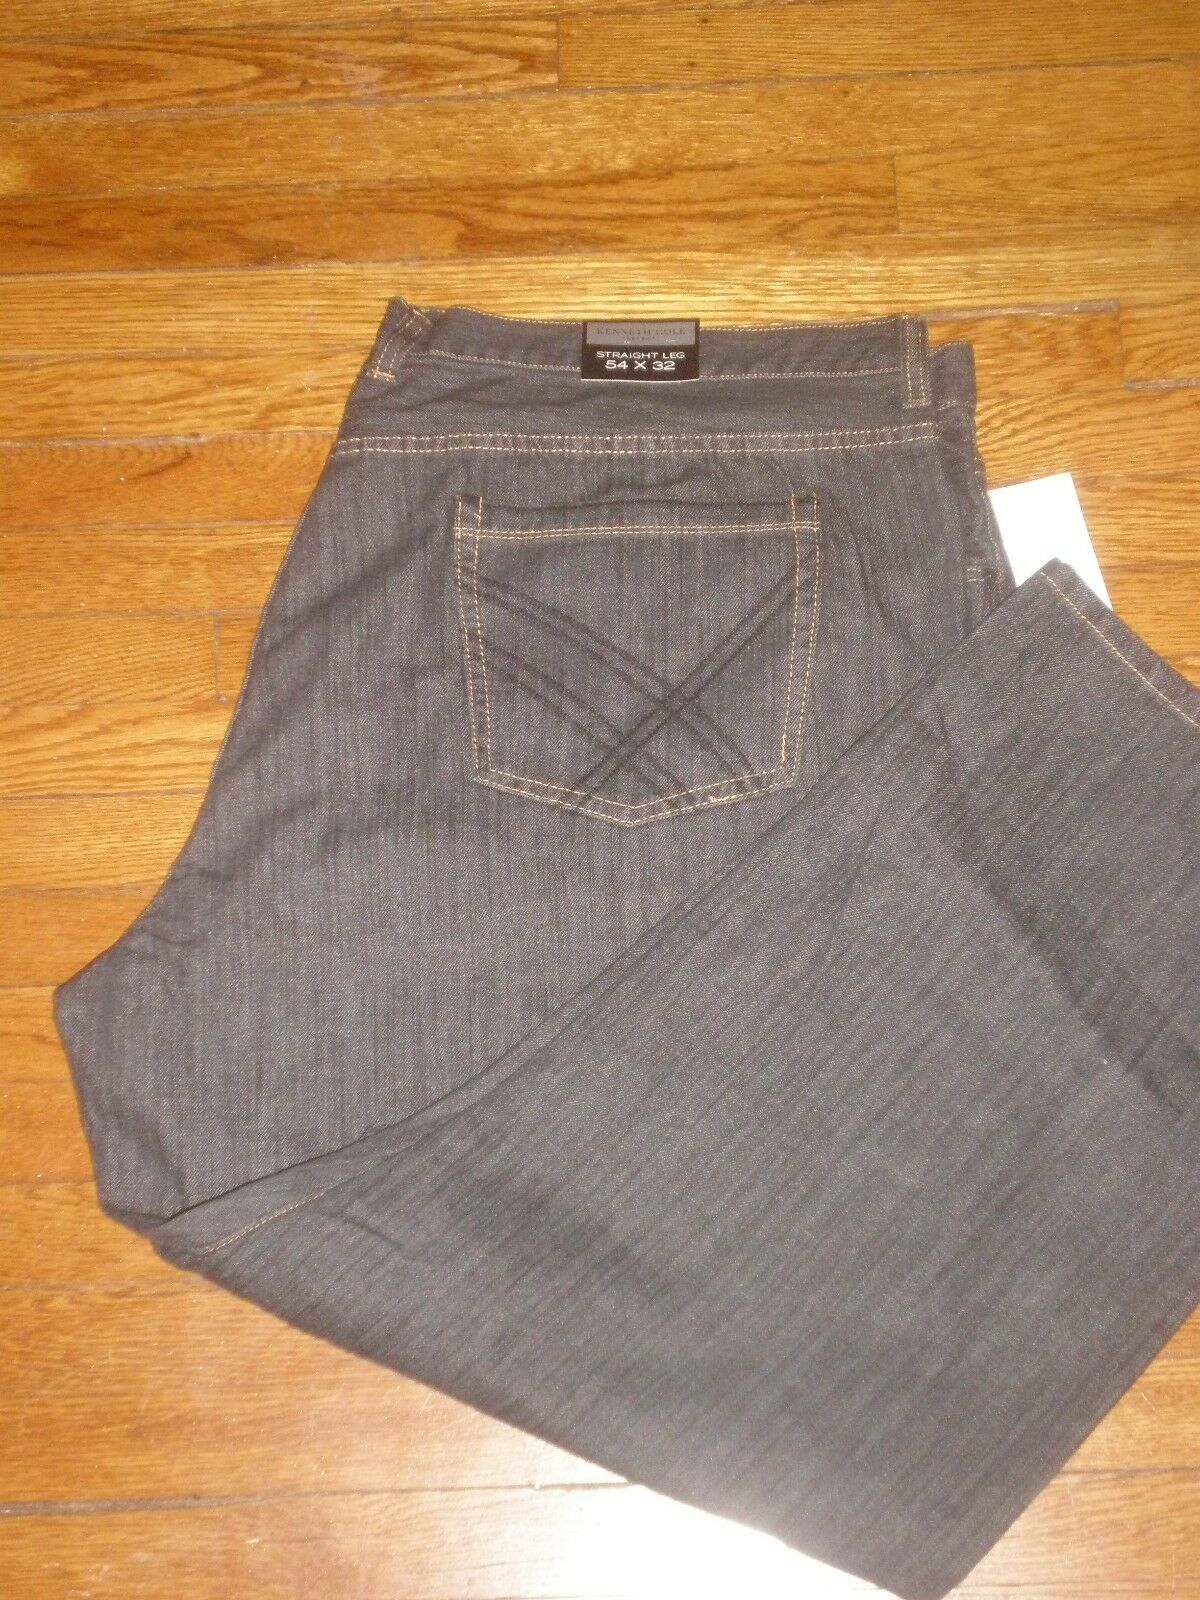 NWT KENNETH COLE SELECT STRAIGHT LEG JEANS SZ  54 X 32 RETAIL